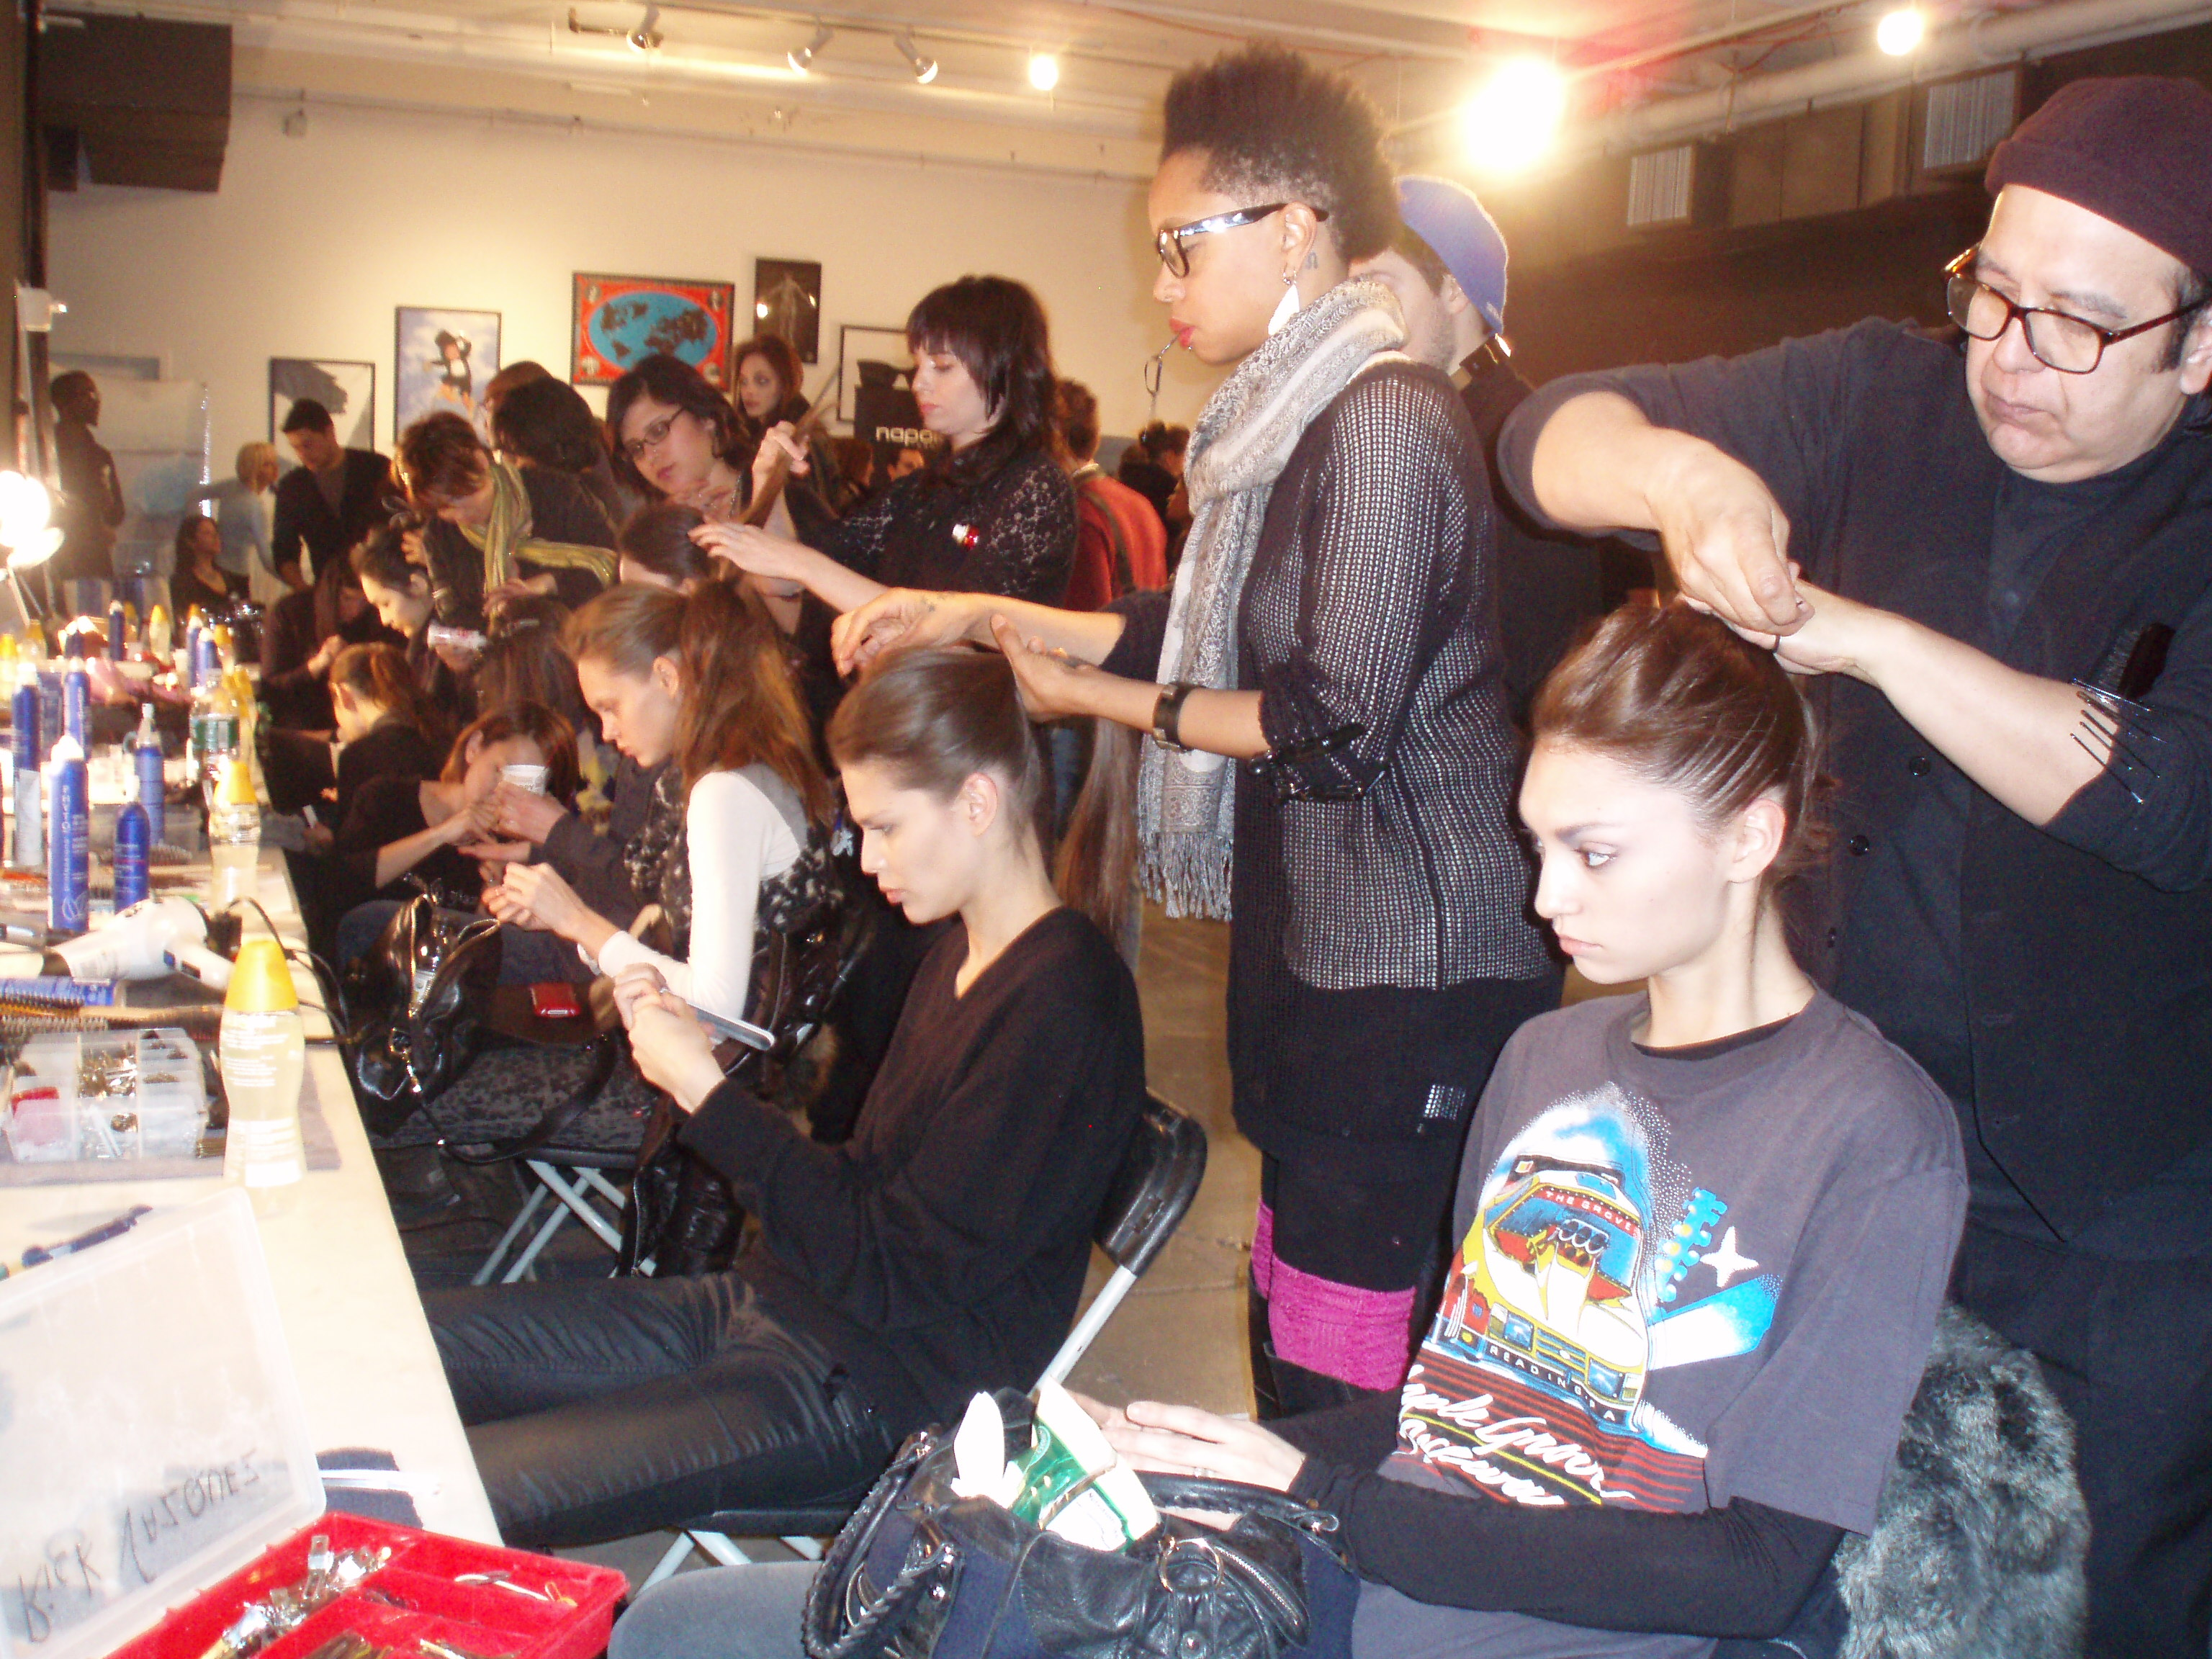 Stylists for Phyto work on messy chignon-like updos.